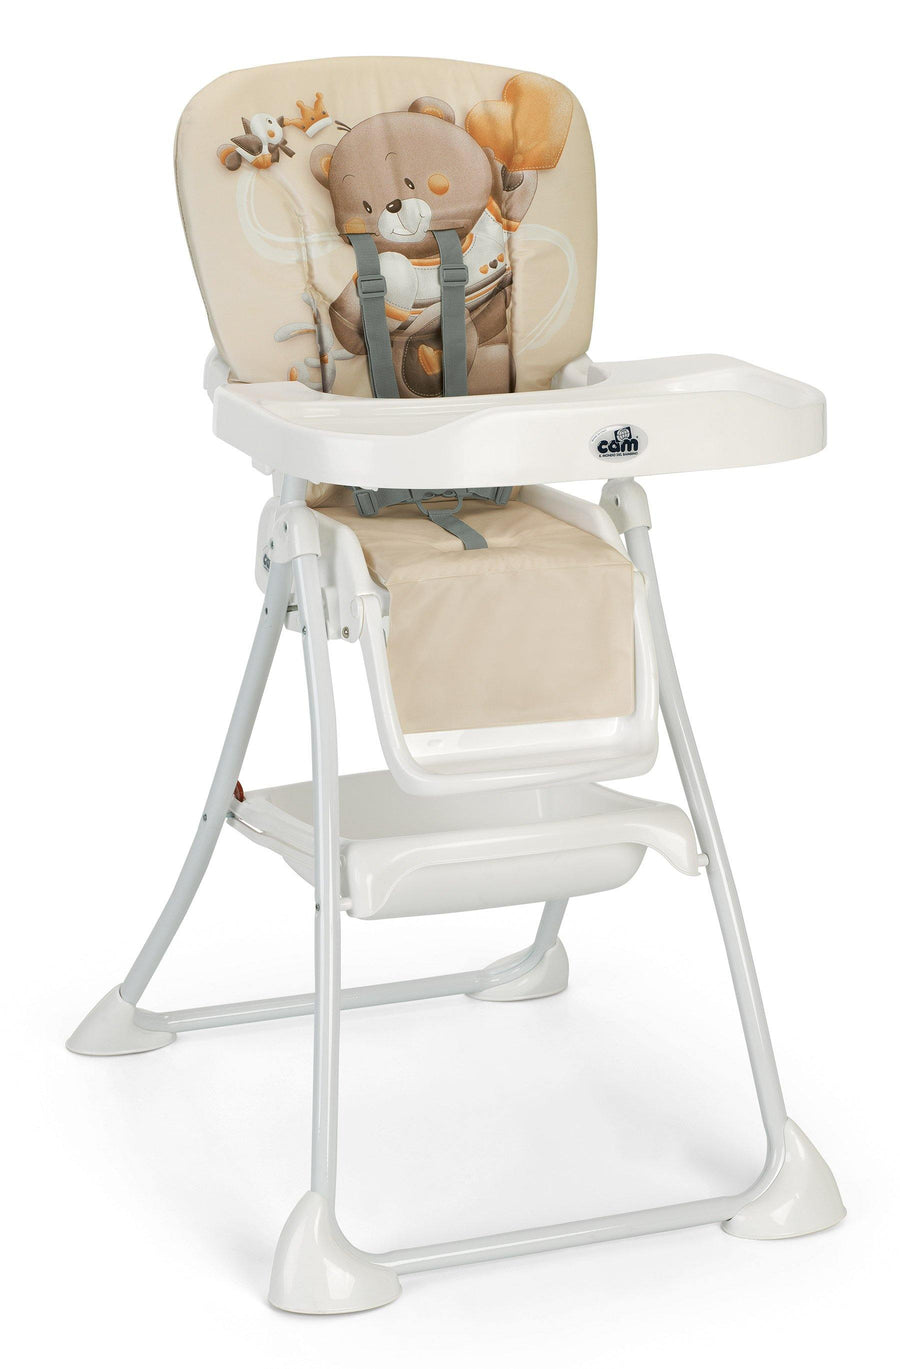 CAM SILLA DE COMER MINI PLUS